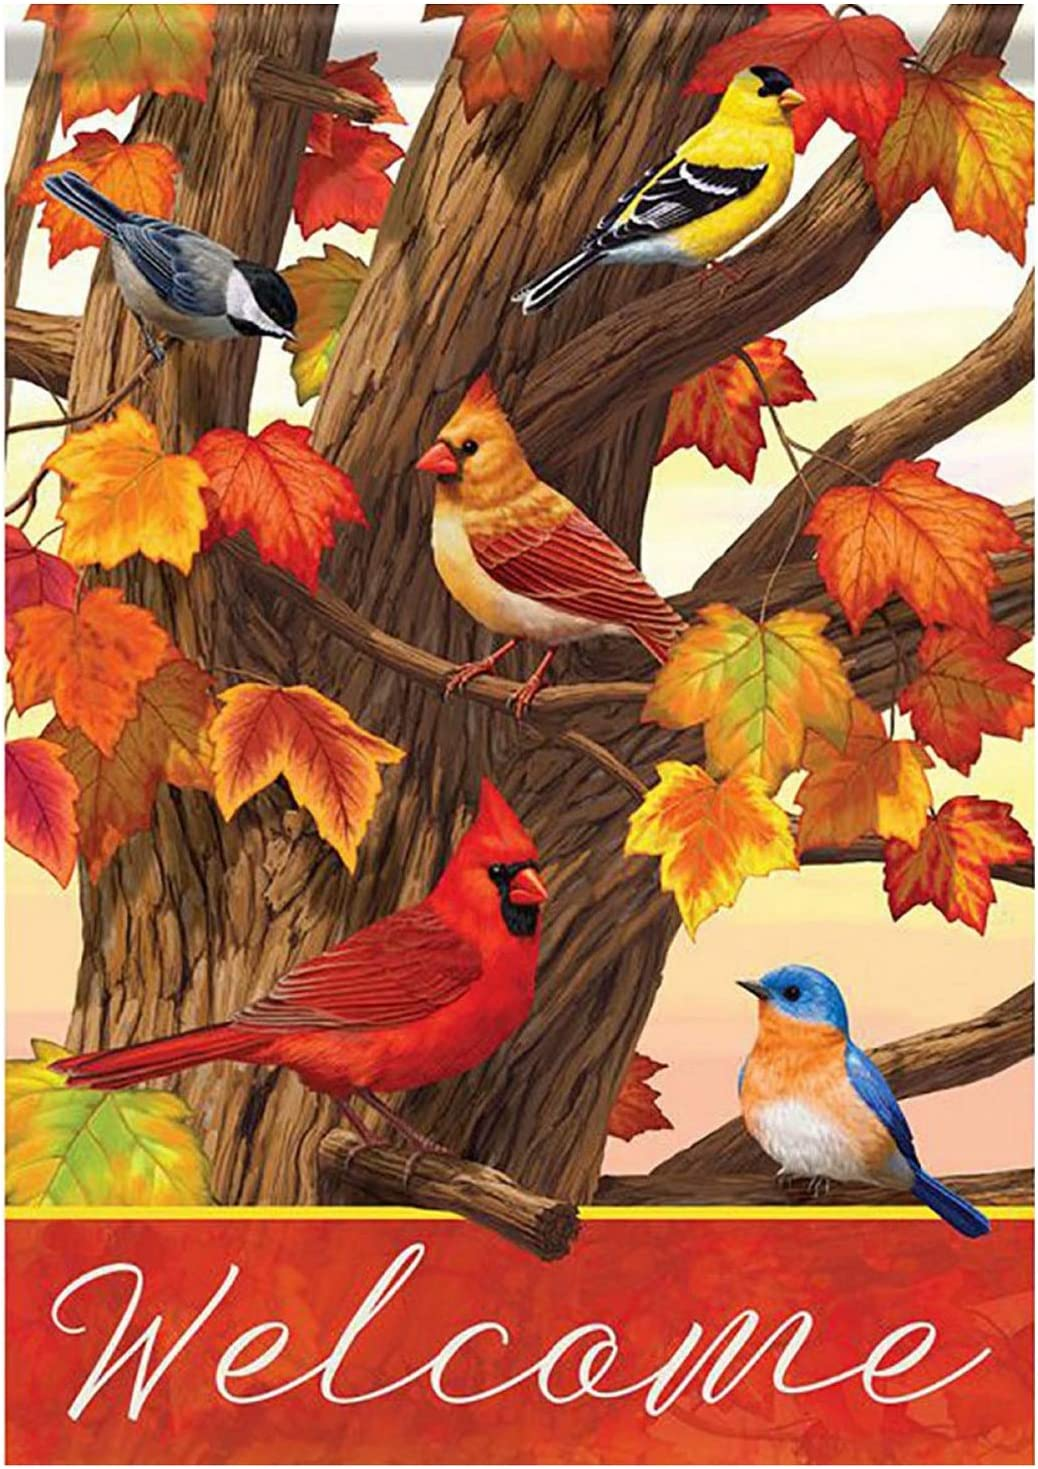 Wamika Cardinal Blue Bird Maple Leaves House Flag 28 x 40 Double Sided, Songbird Gathering Welcome Fall Autumn Garden Yard Flags Outdoor Indoor Seasonal Banner for Party Home Decorations